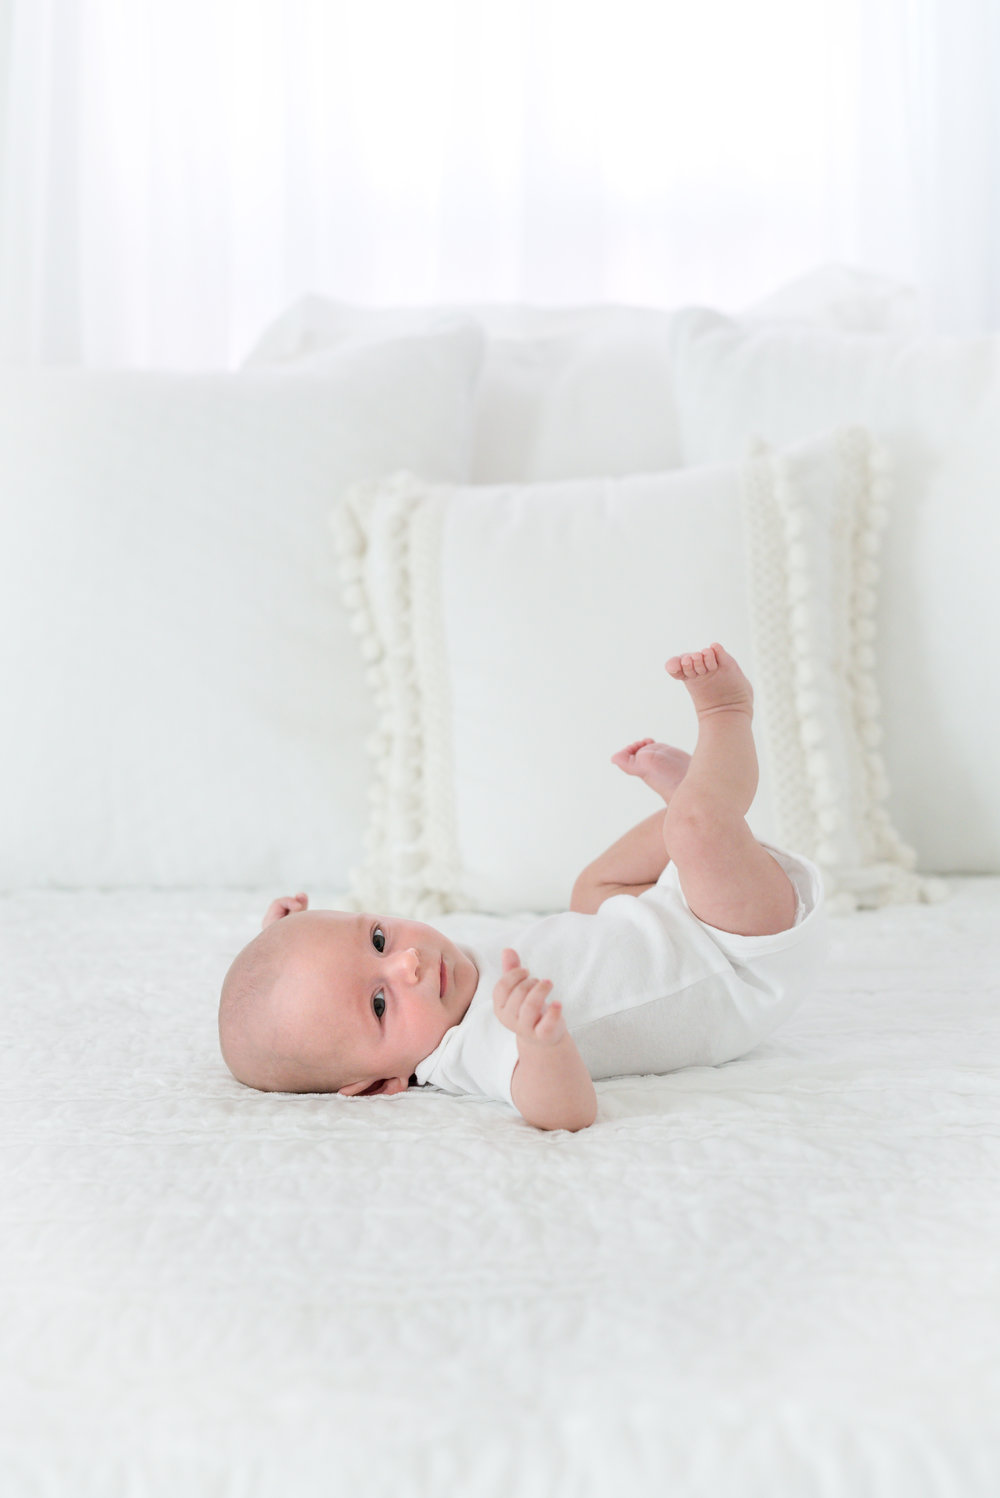 Johns-Island-Newborn-Photographer-Following-Seas-Photography-8836 copy.jpg